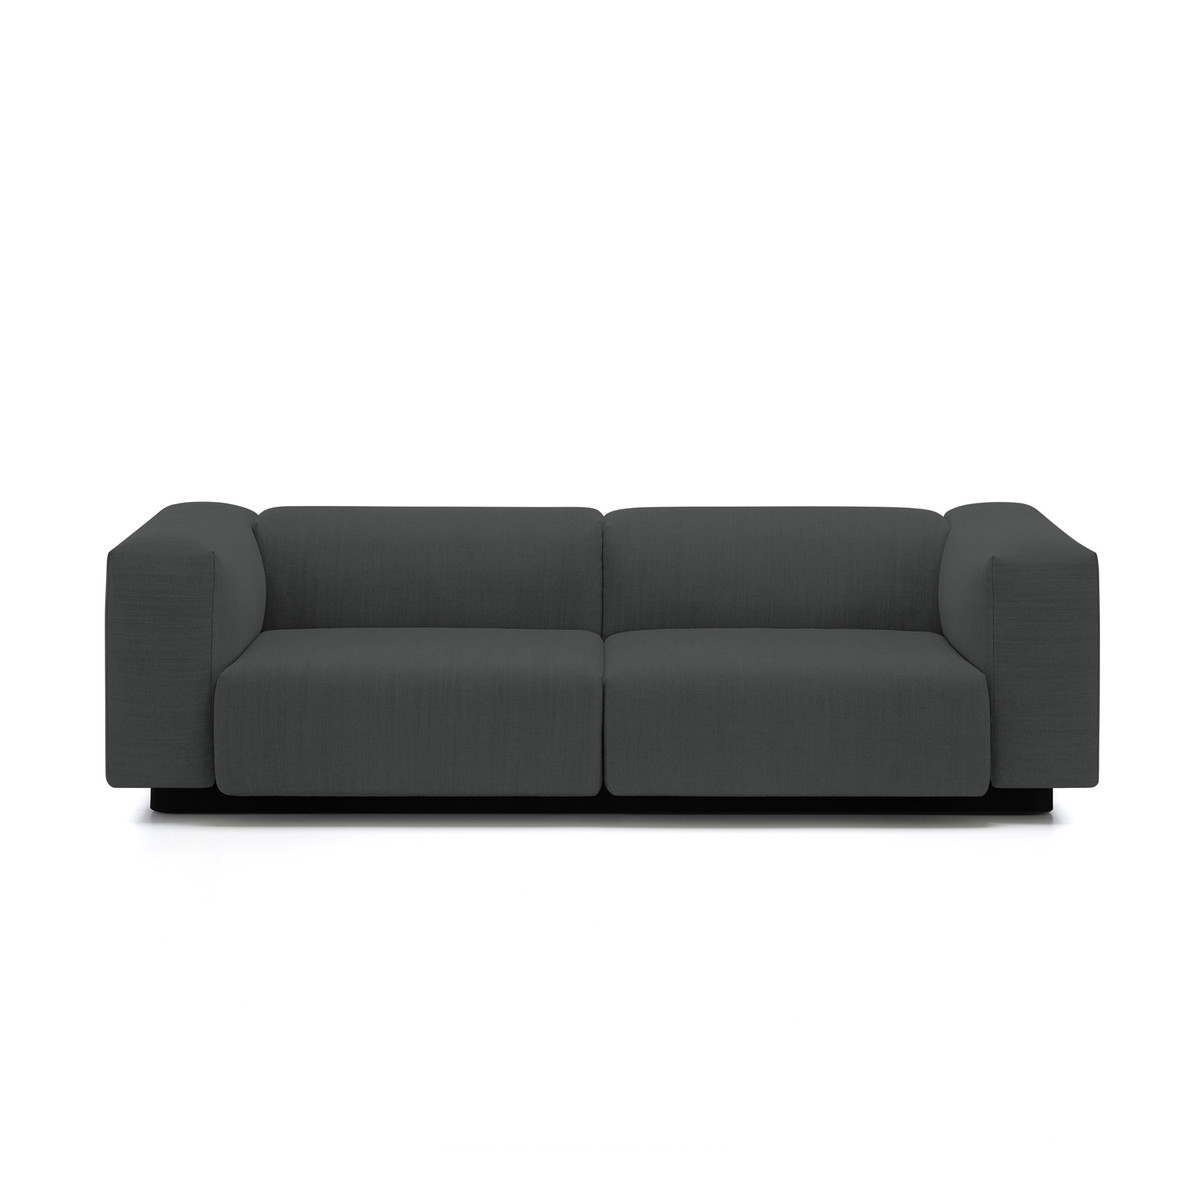 Soft Modular 2 Seater Sofa From Vitra In The Connox Shop Pertaining To Soft Sofas (View 5 of 10)